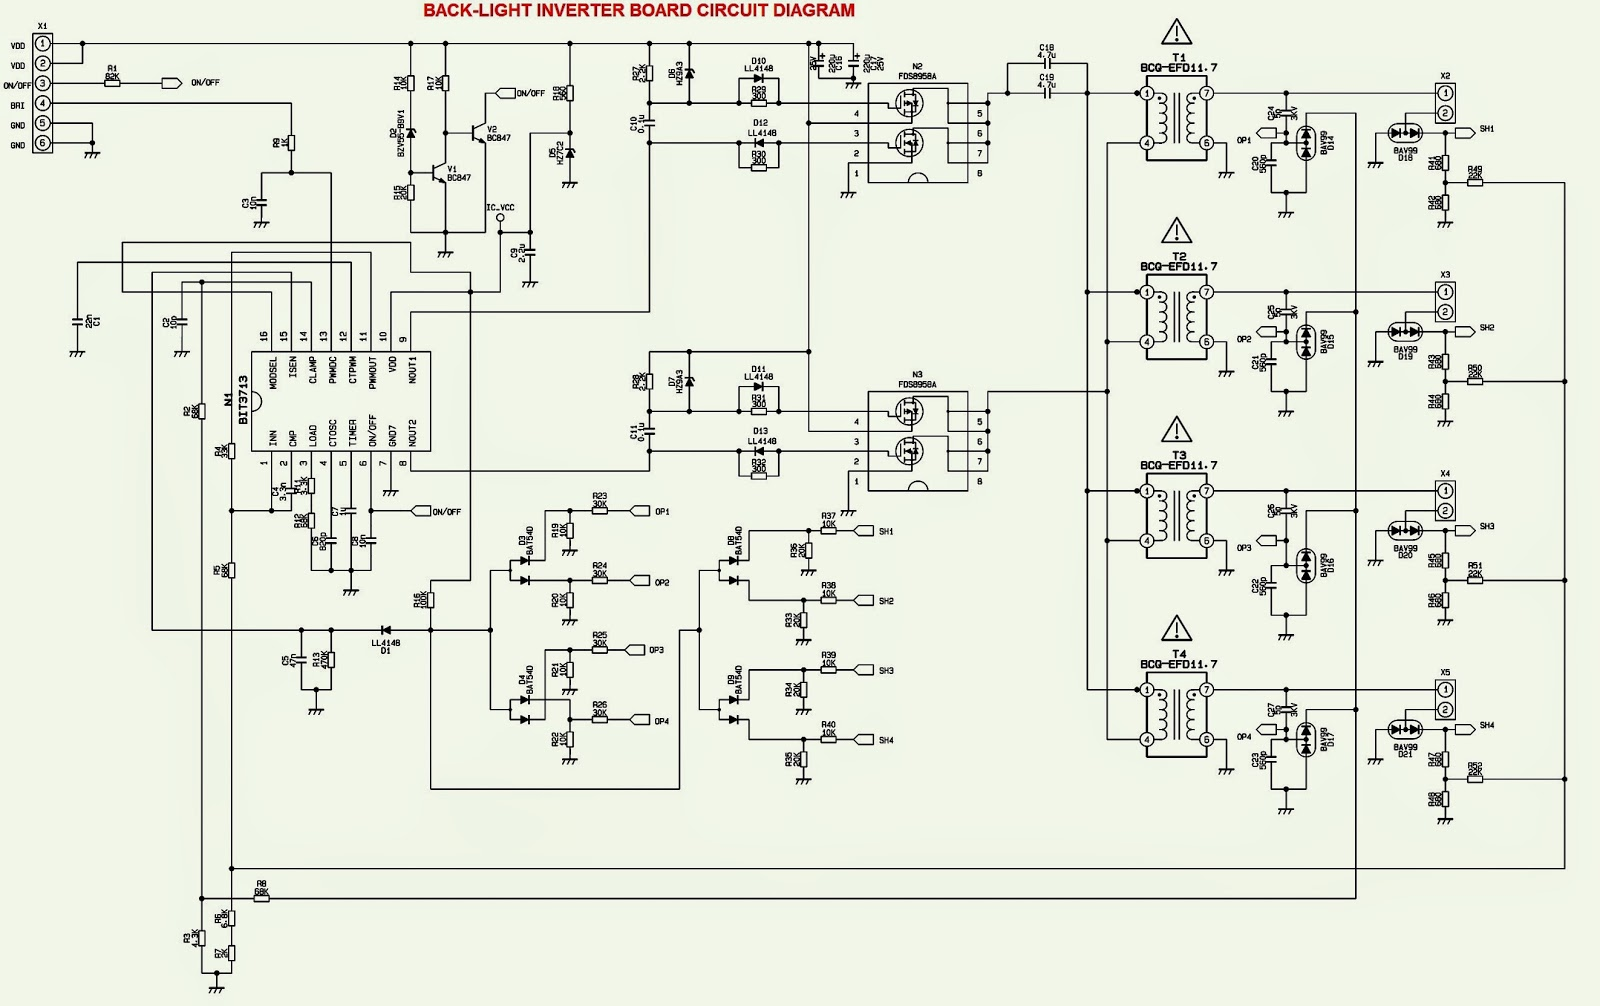 medium resolution of back light inverter schematic